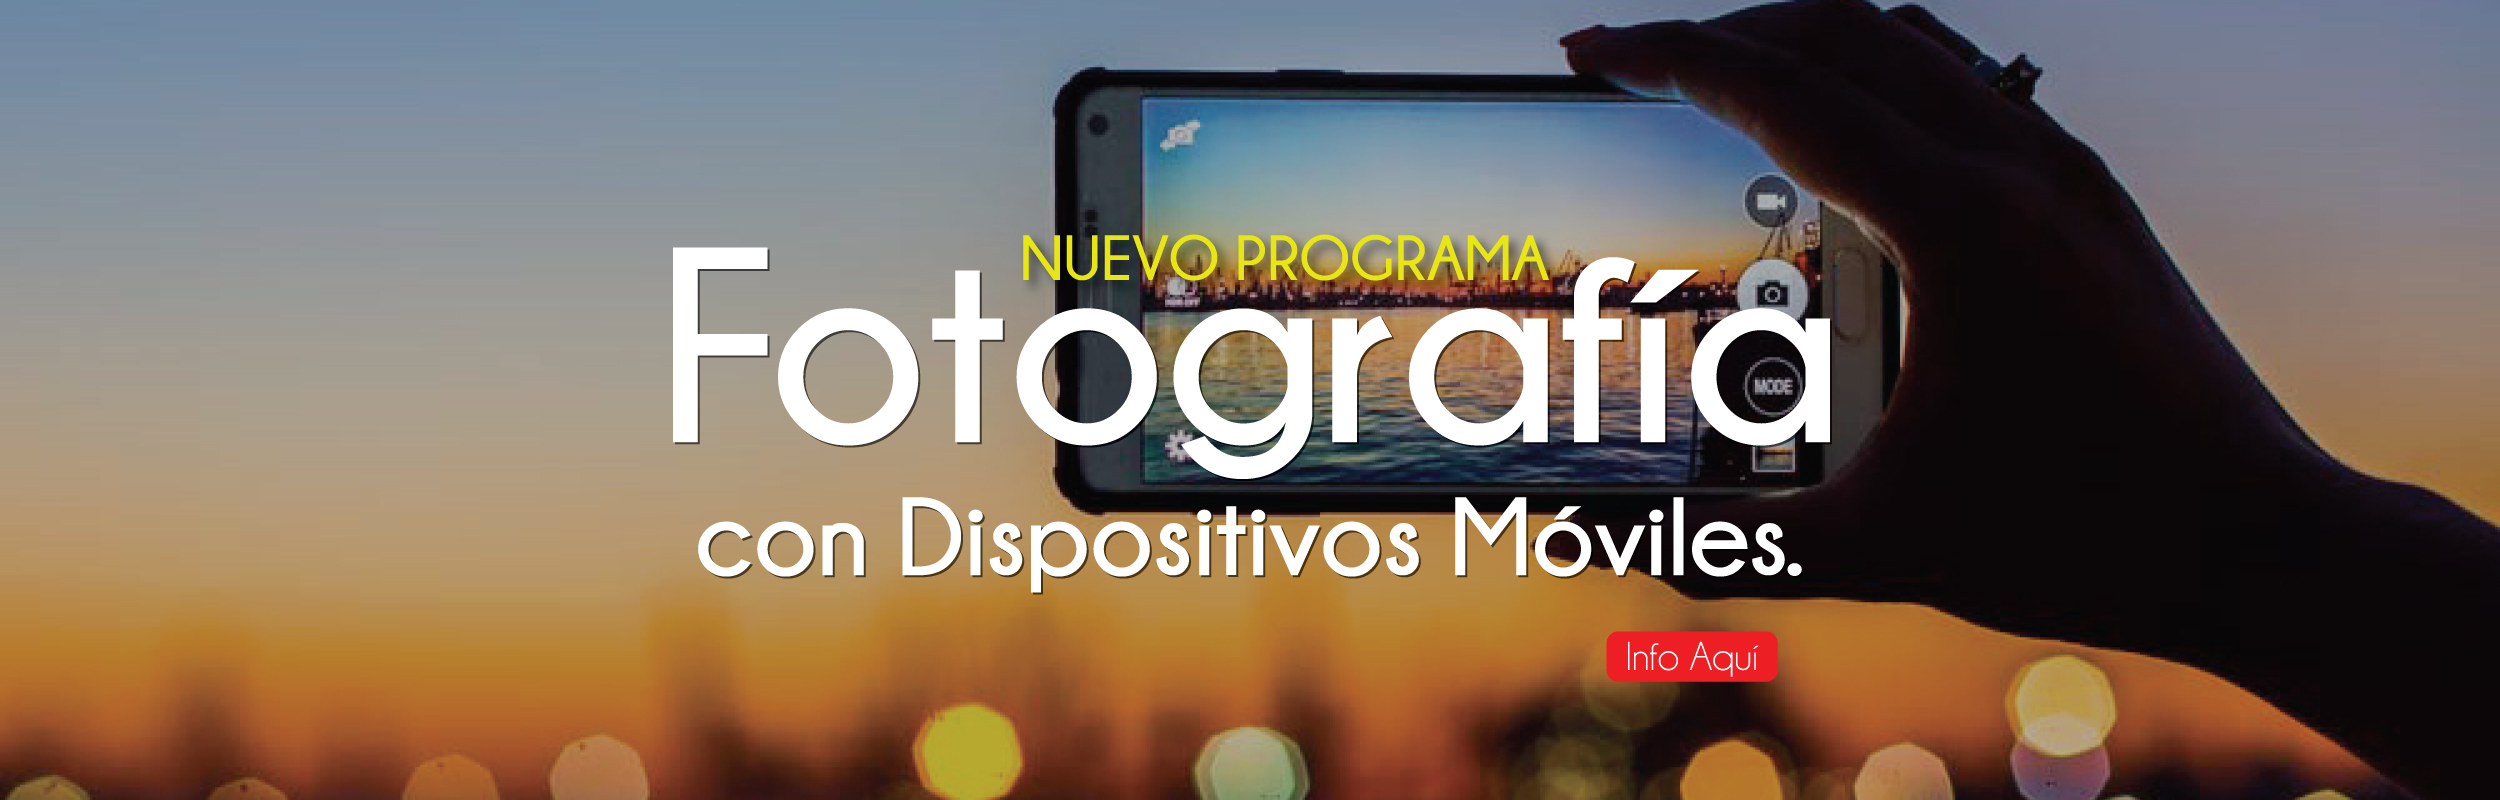 Curso de Fotografía con Dispositivos Moviles